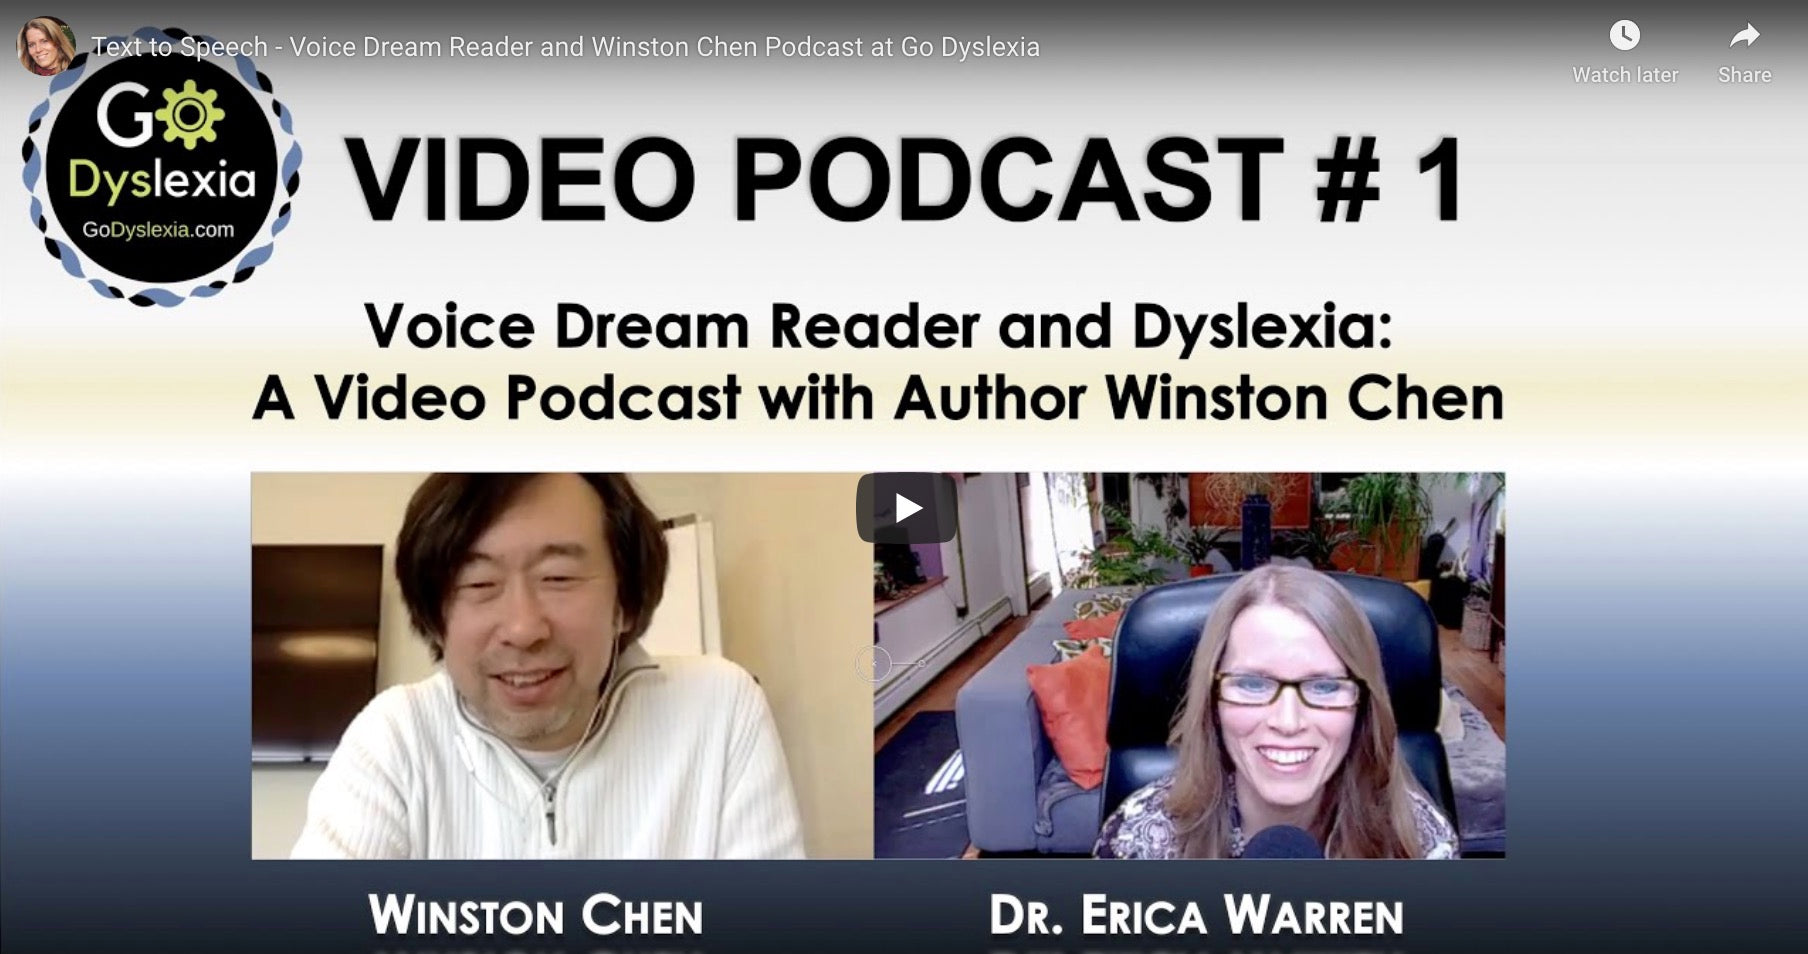 Podcast about Voice Dream Reader